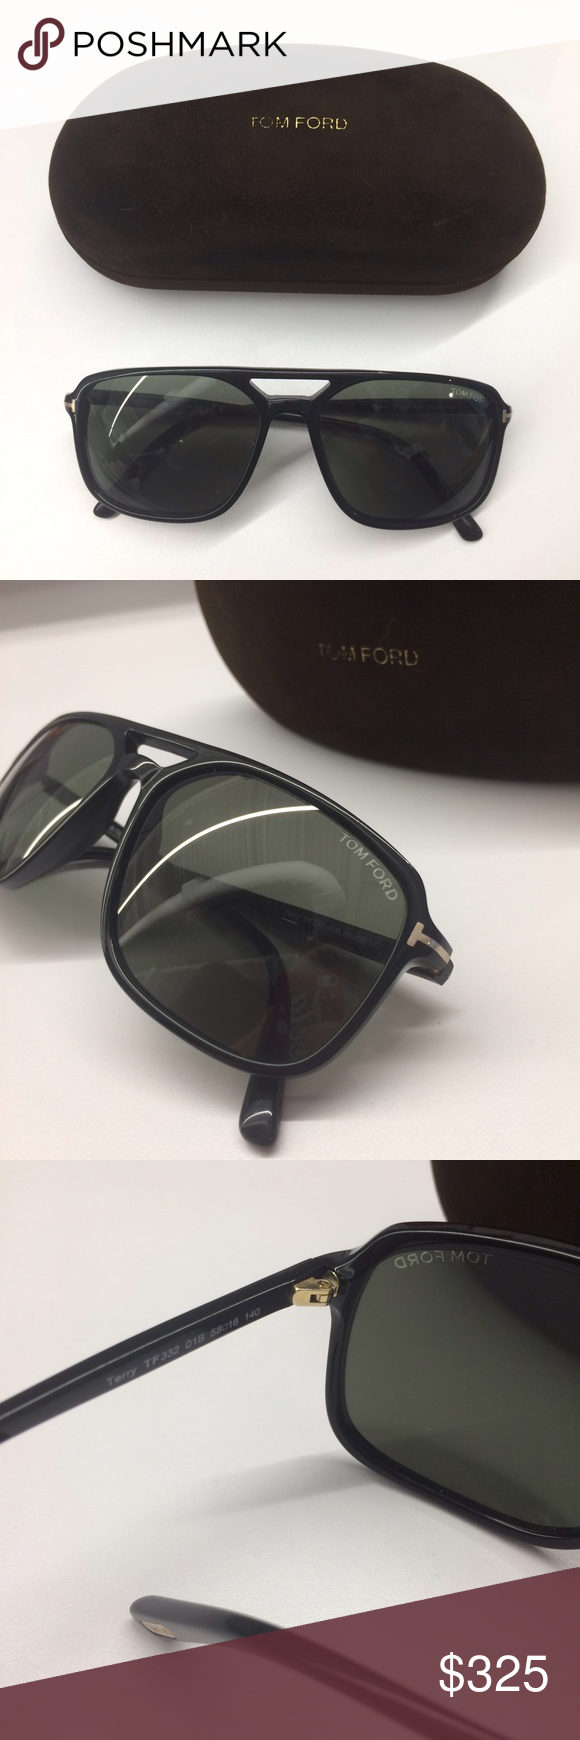 82e5f764f354 Tom Ford - Terry Sunglasses - unisex style Perfect condition